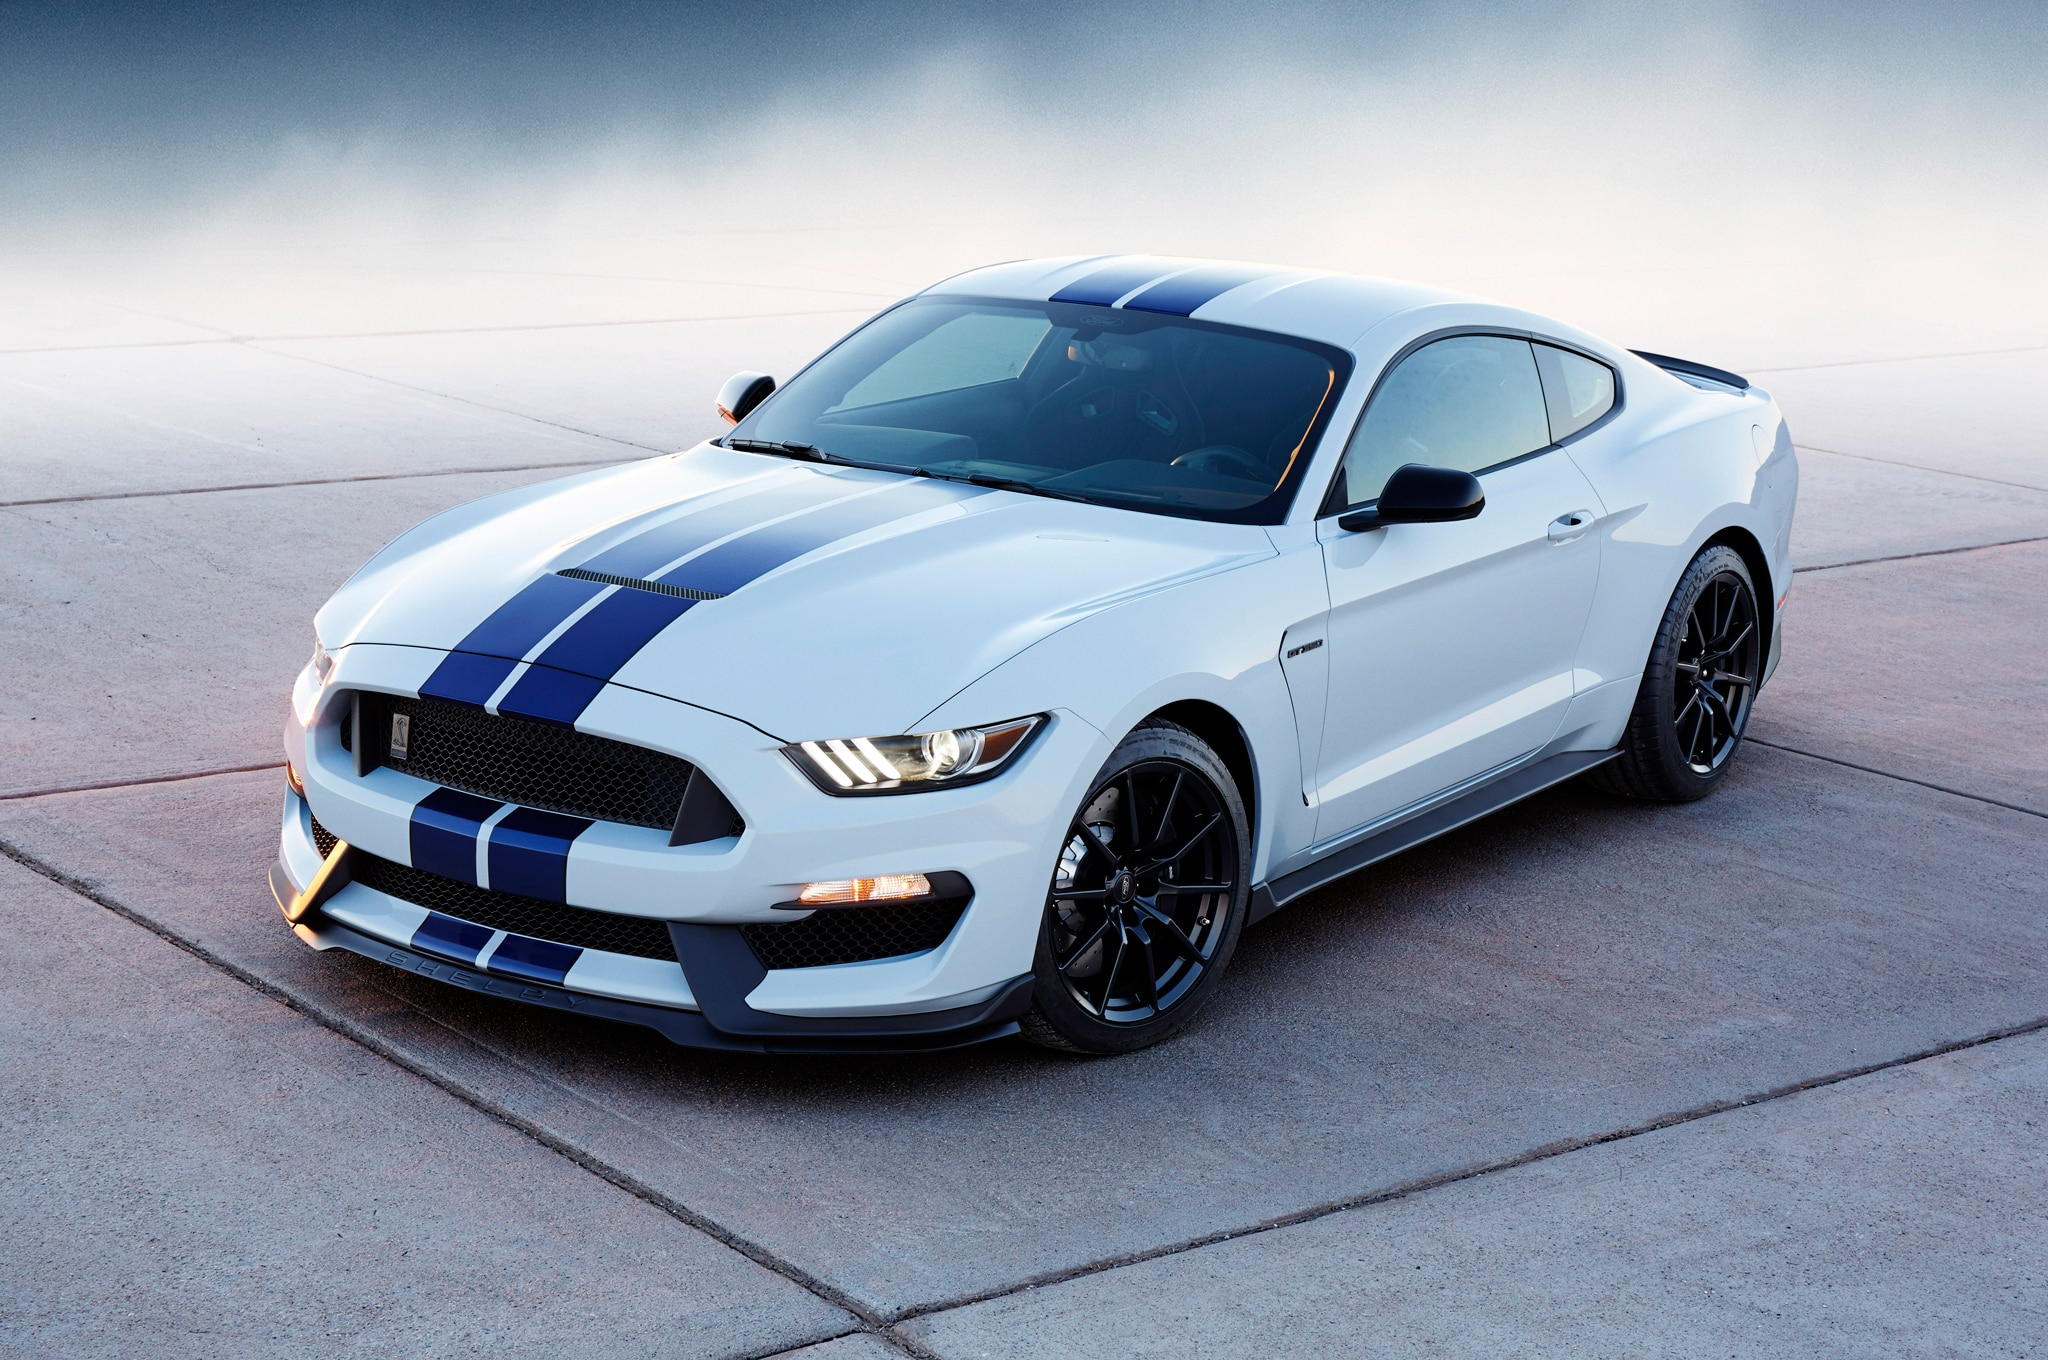 2016 ford mustang shelby gt350r - Show More